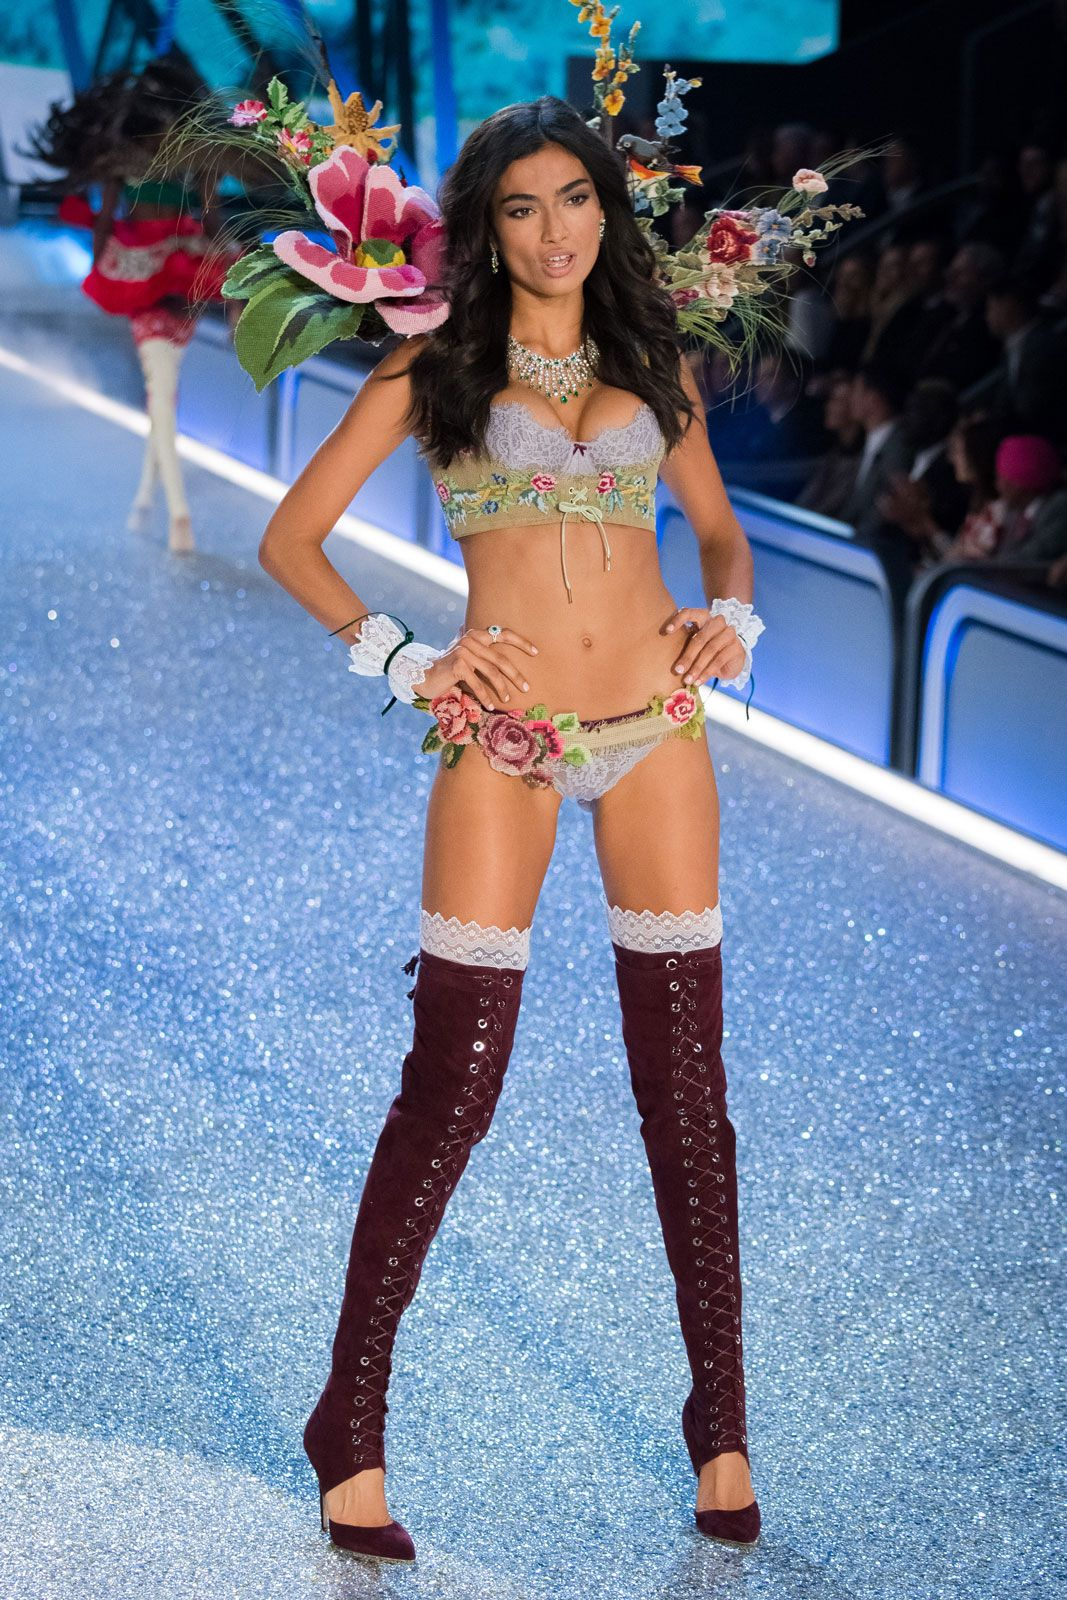 Kelly Gale On The Podium - Kelly Gale On The Podium